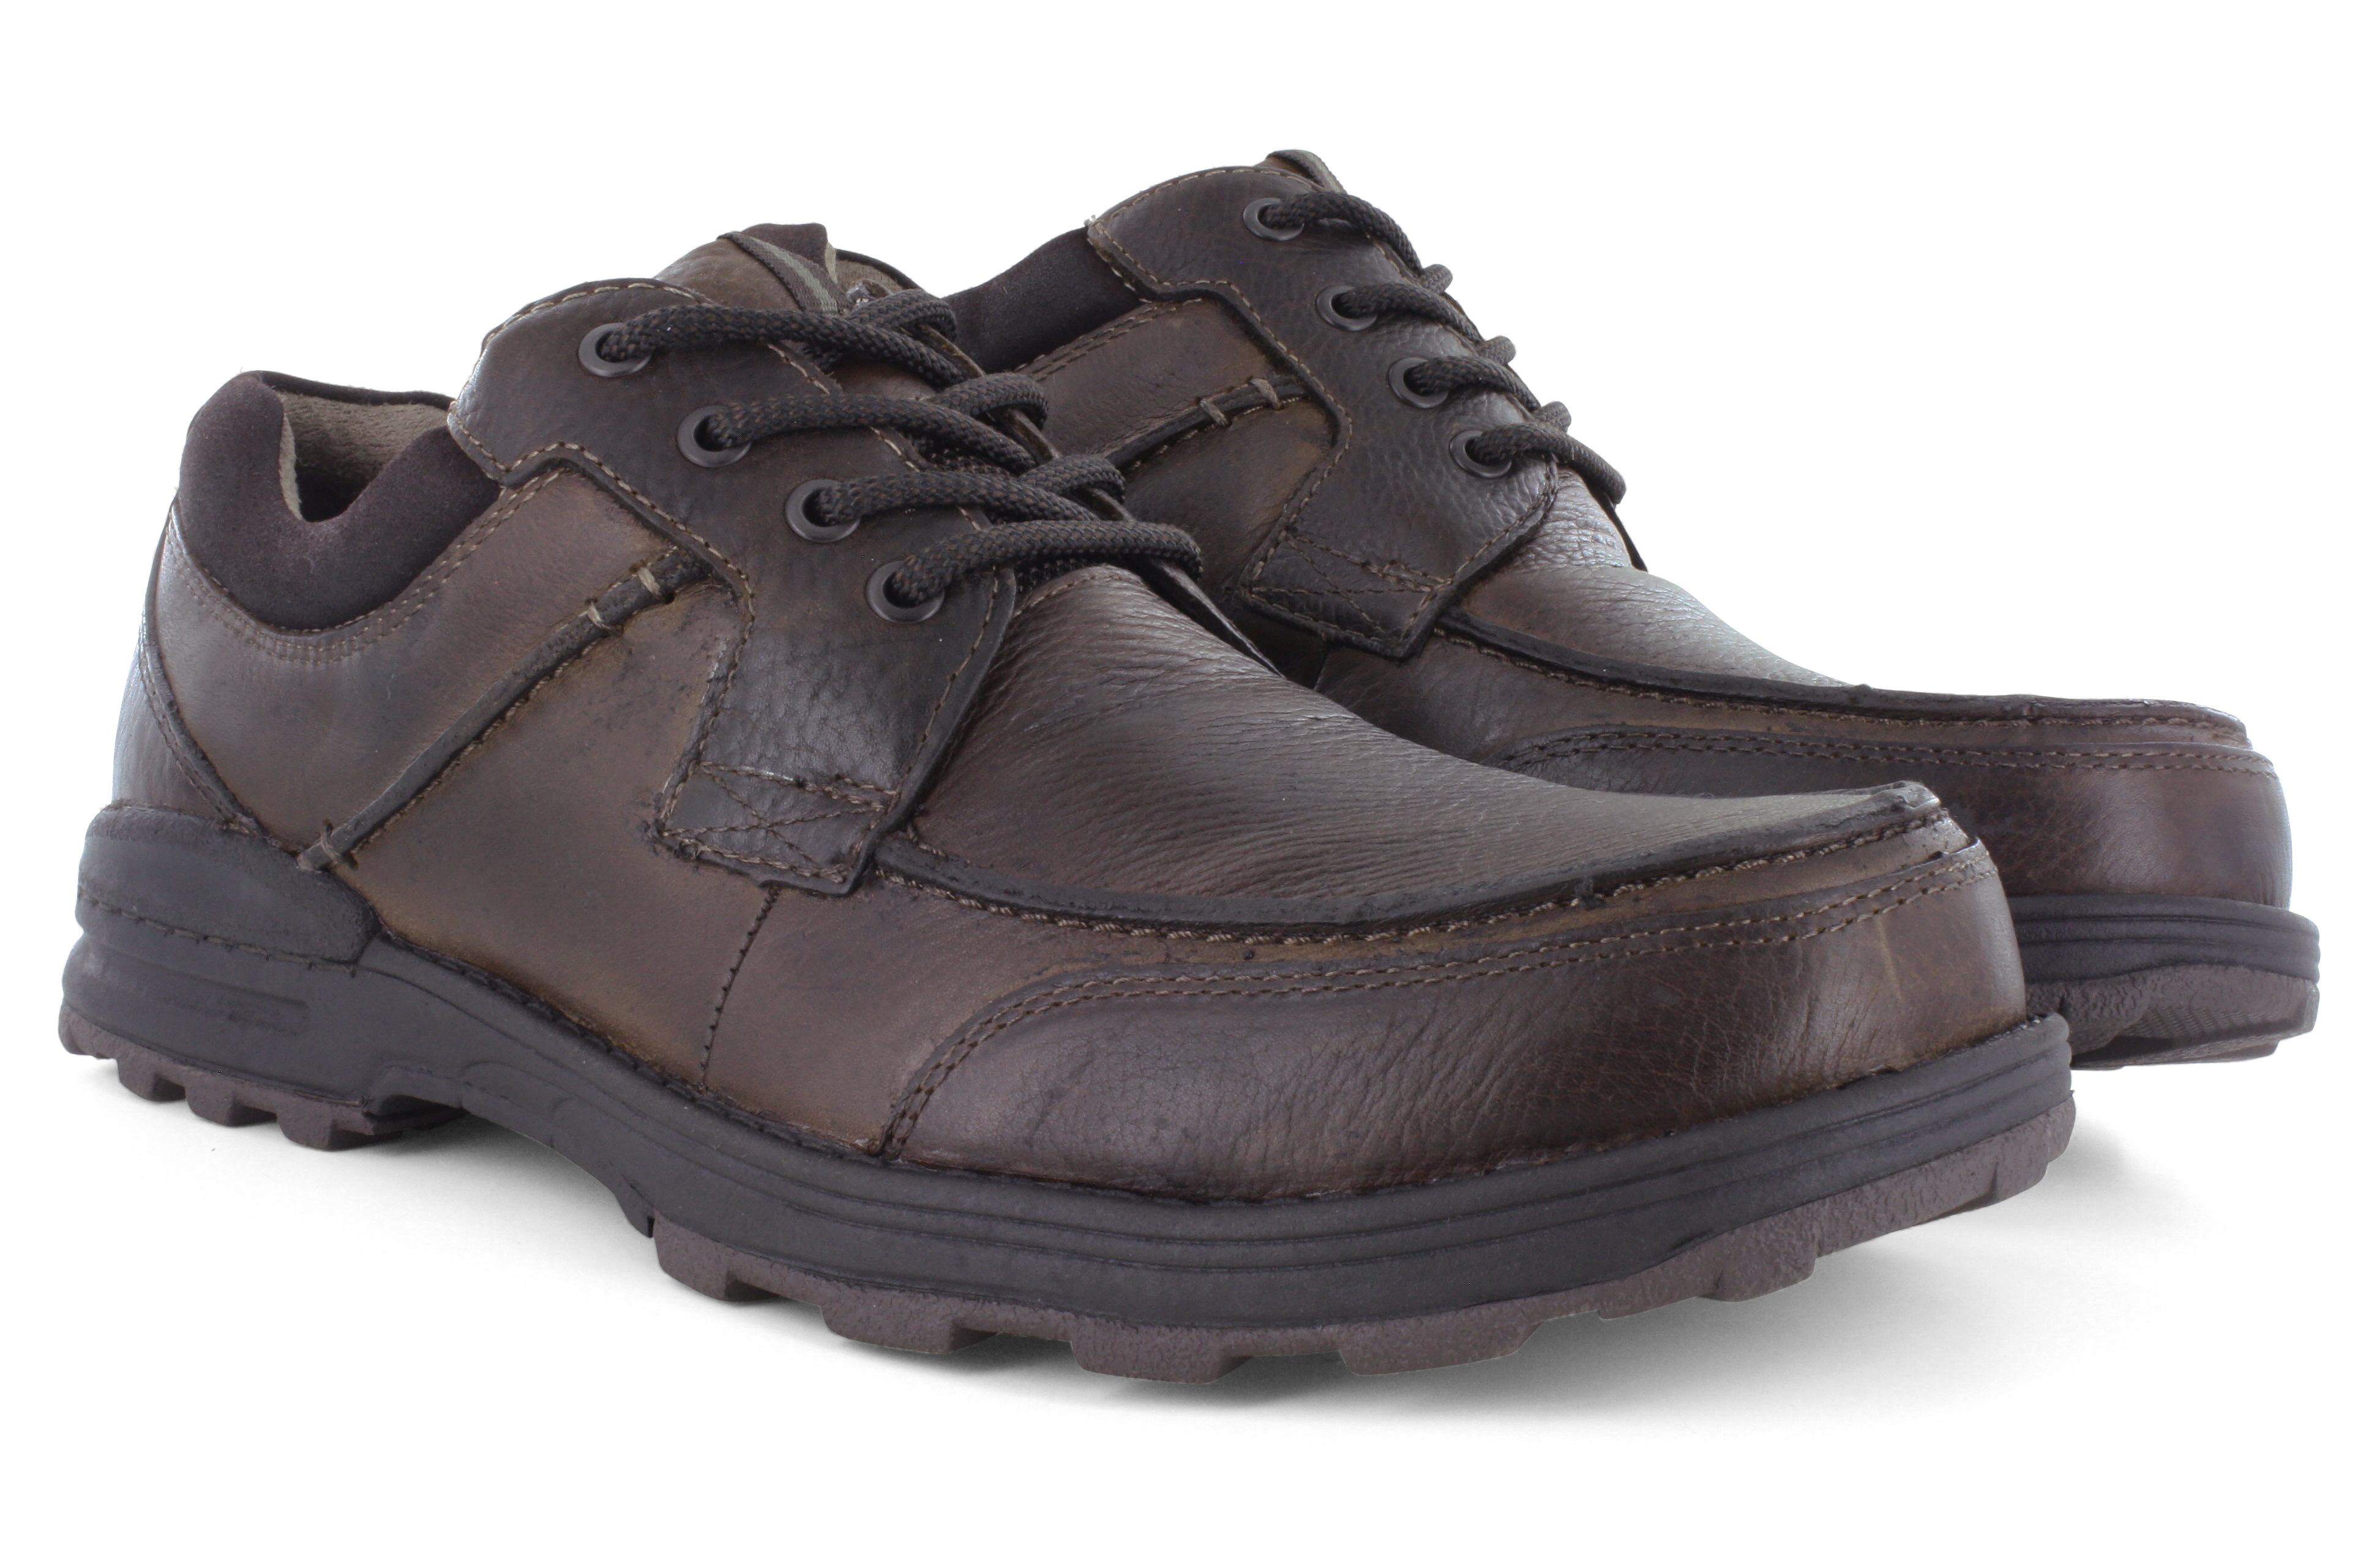 Image Result For Mens Brown Dress Boots